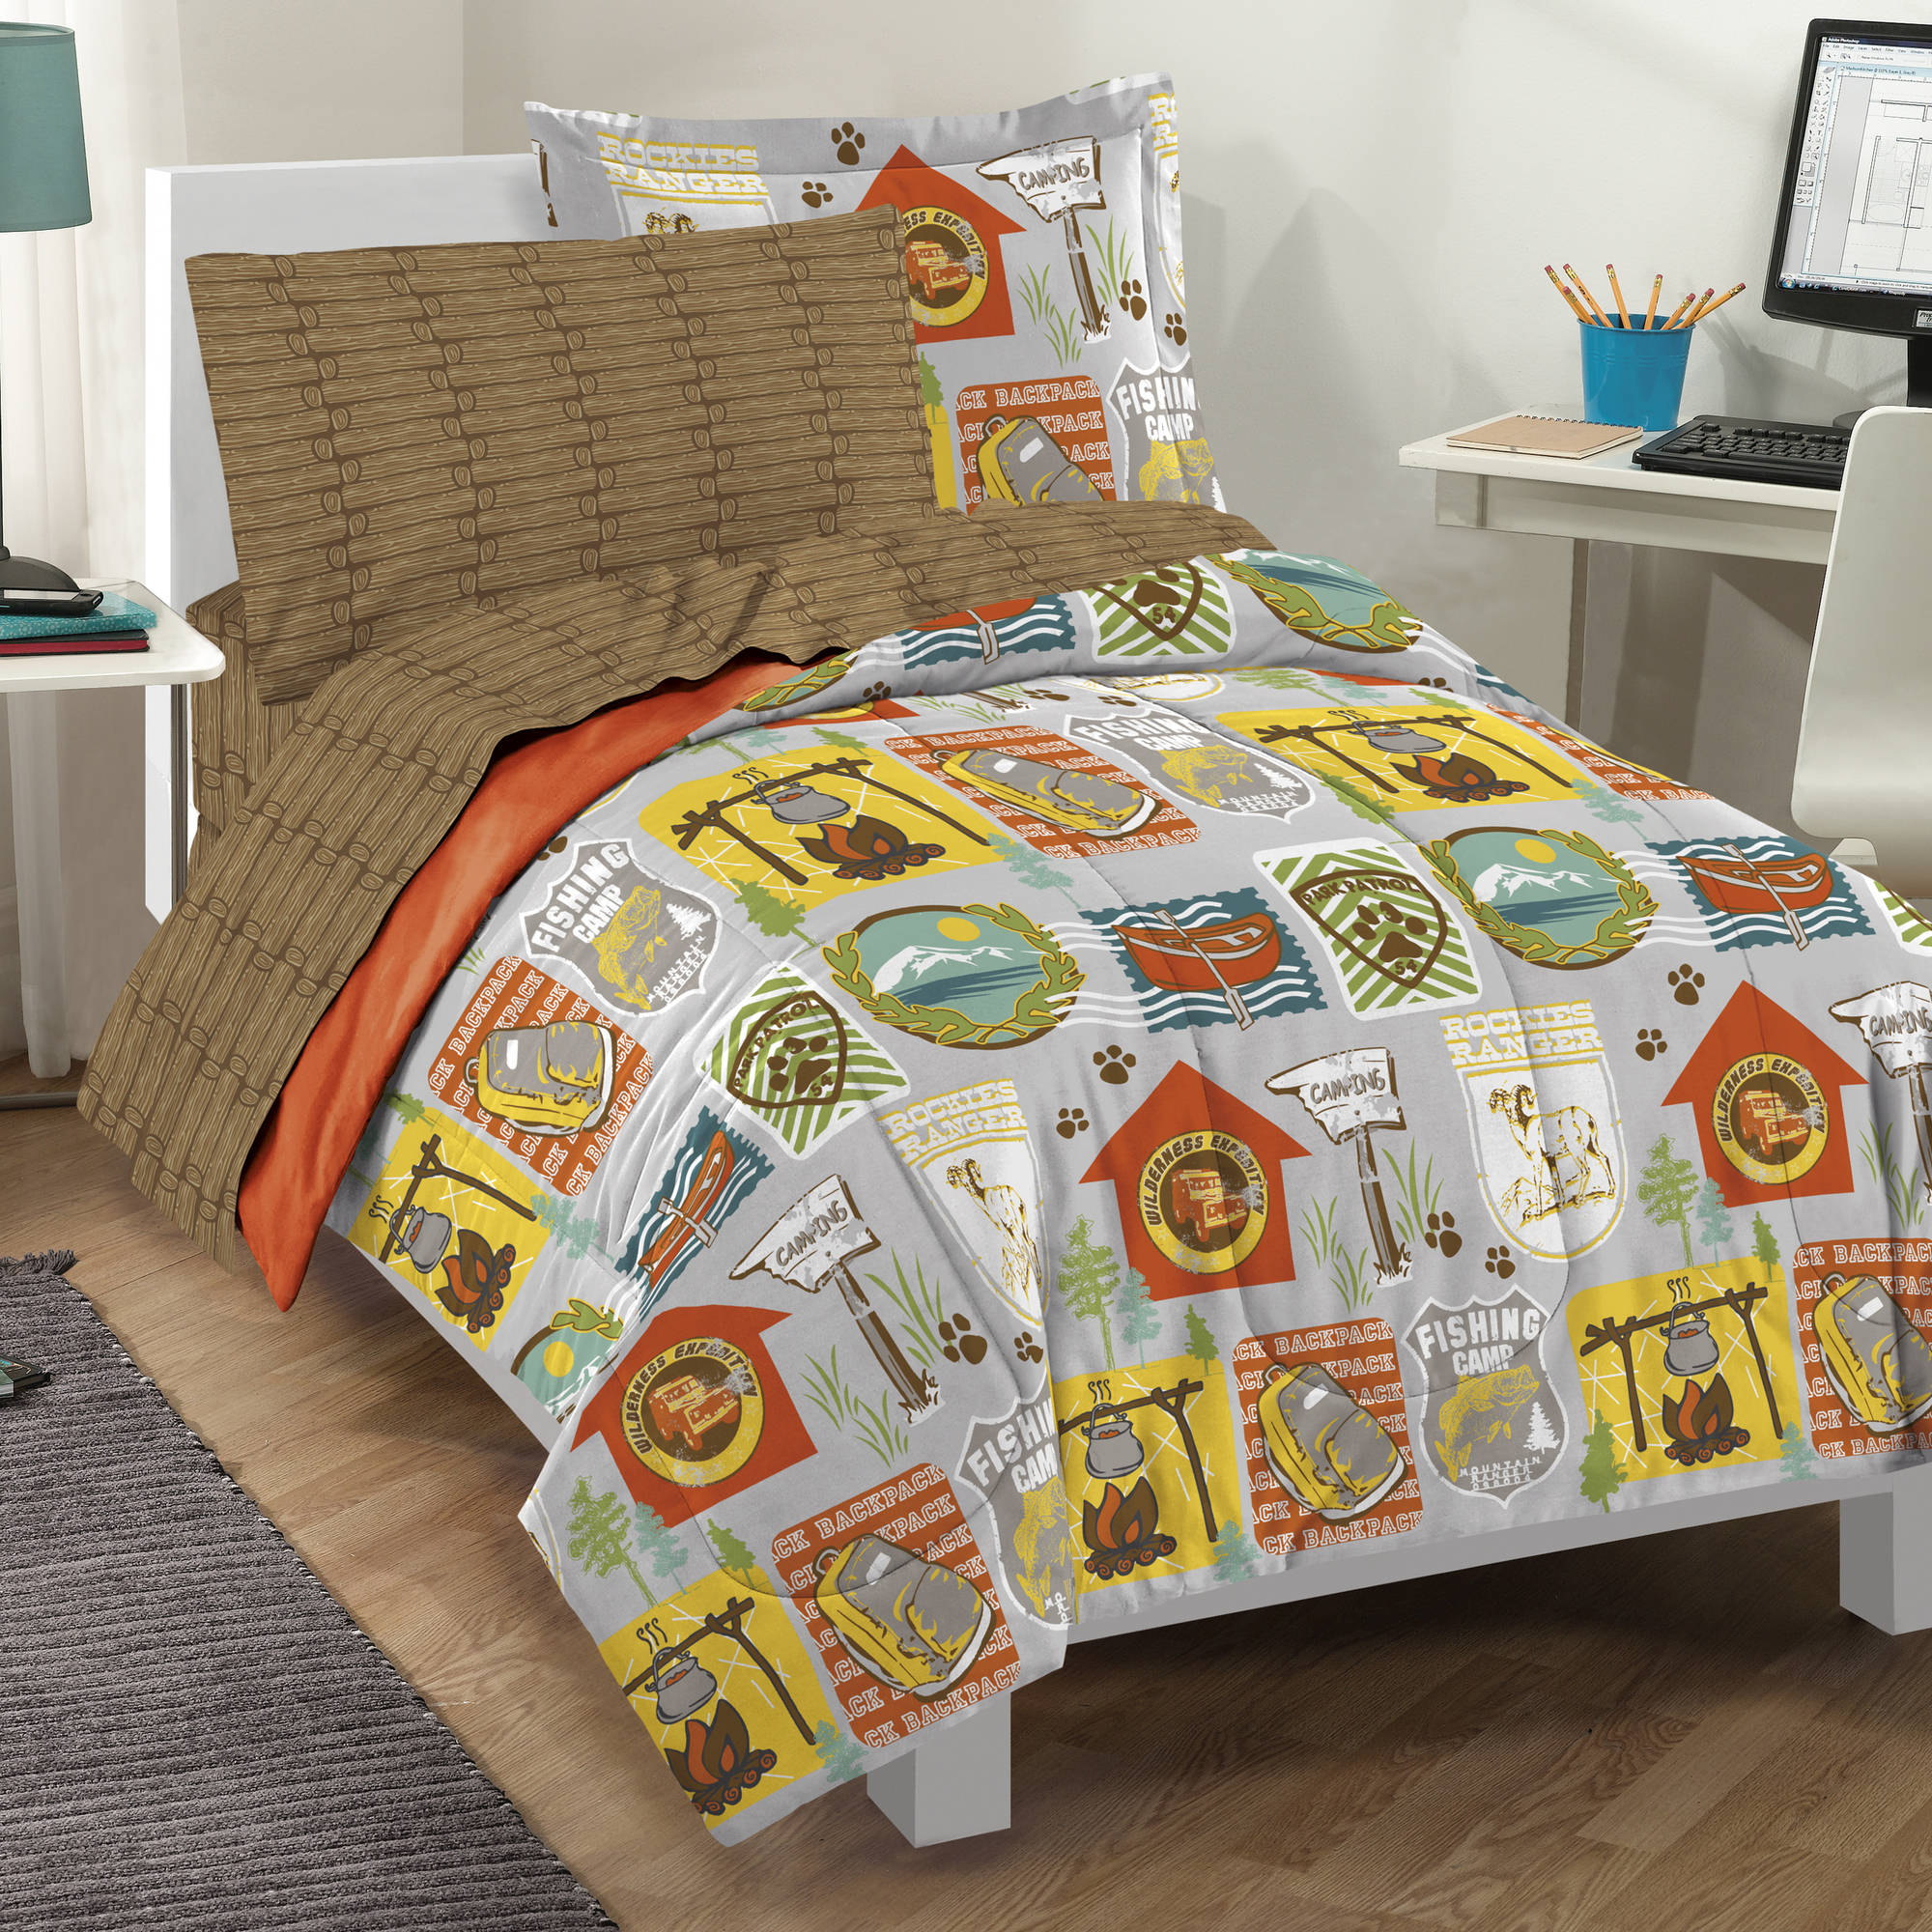 Dream Factory Campout Comforter, Sham and Sheet Set